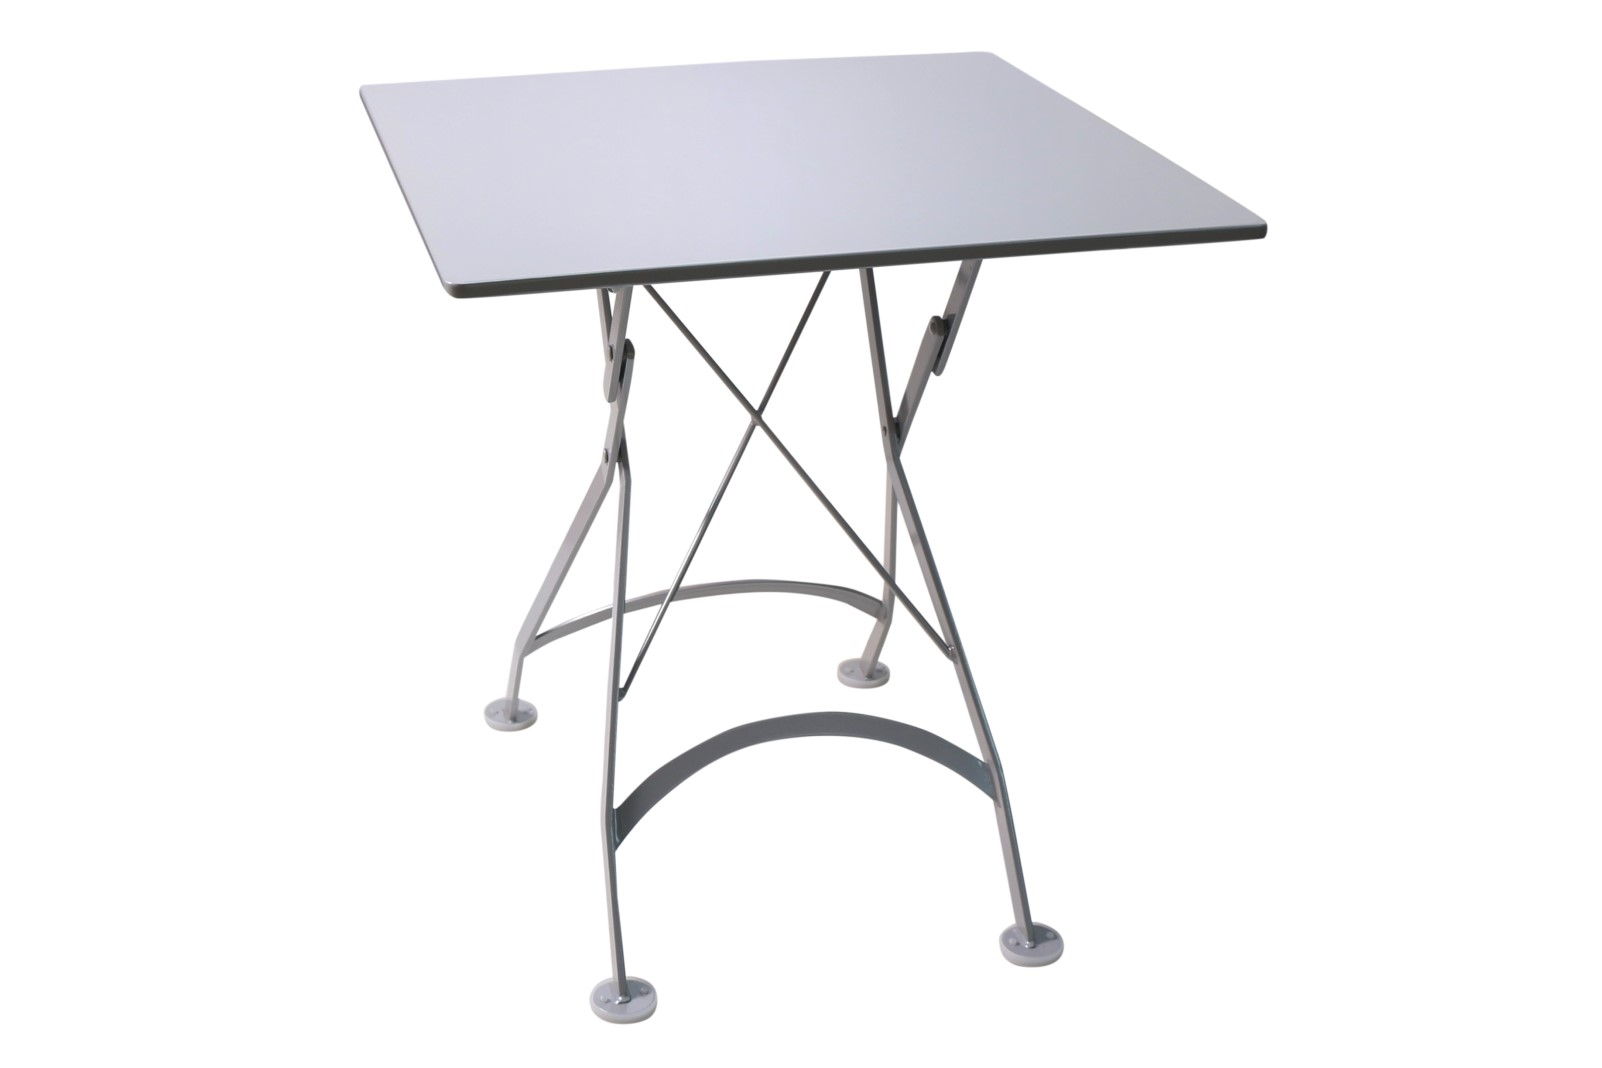 4122S-WA Metal Table with White Aluminum Top and frame 24 x 24